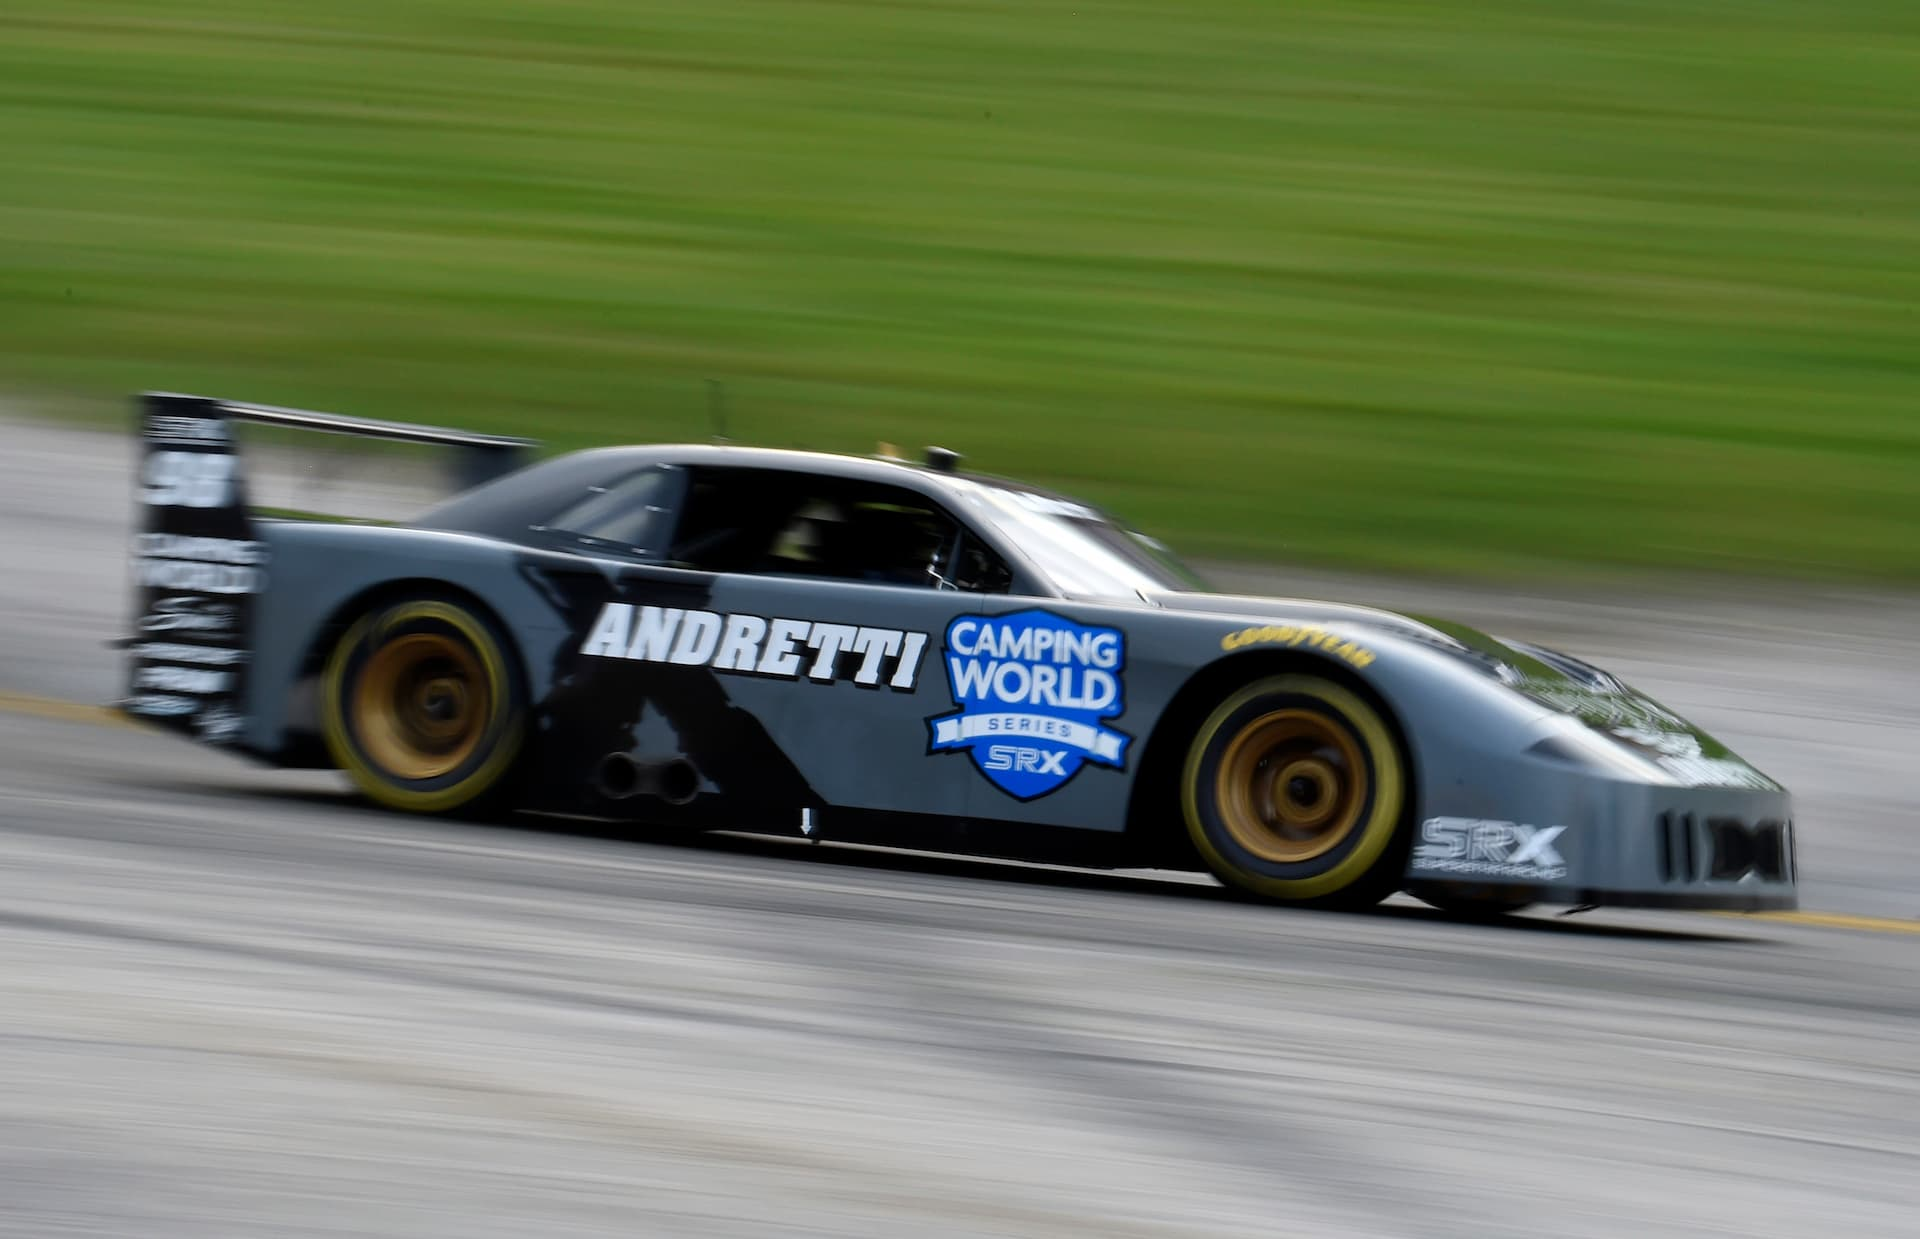 Marco Andretti races his way around Luke Fenhaus for the Round 5 SRX win at Slinger Speedway.